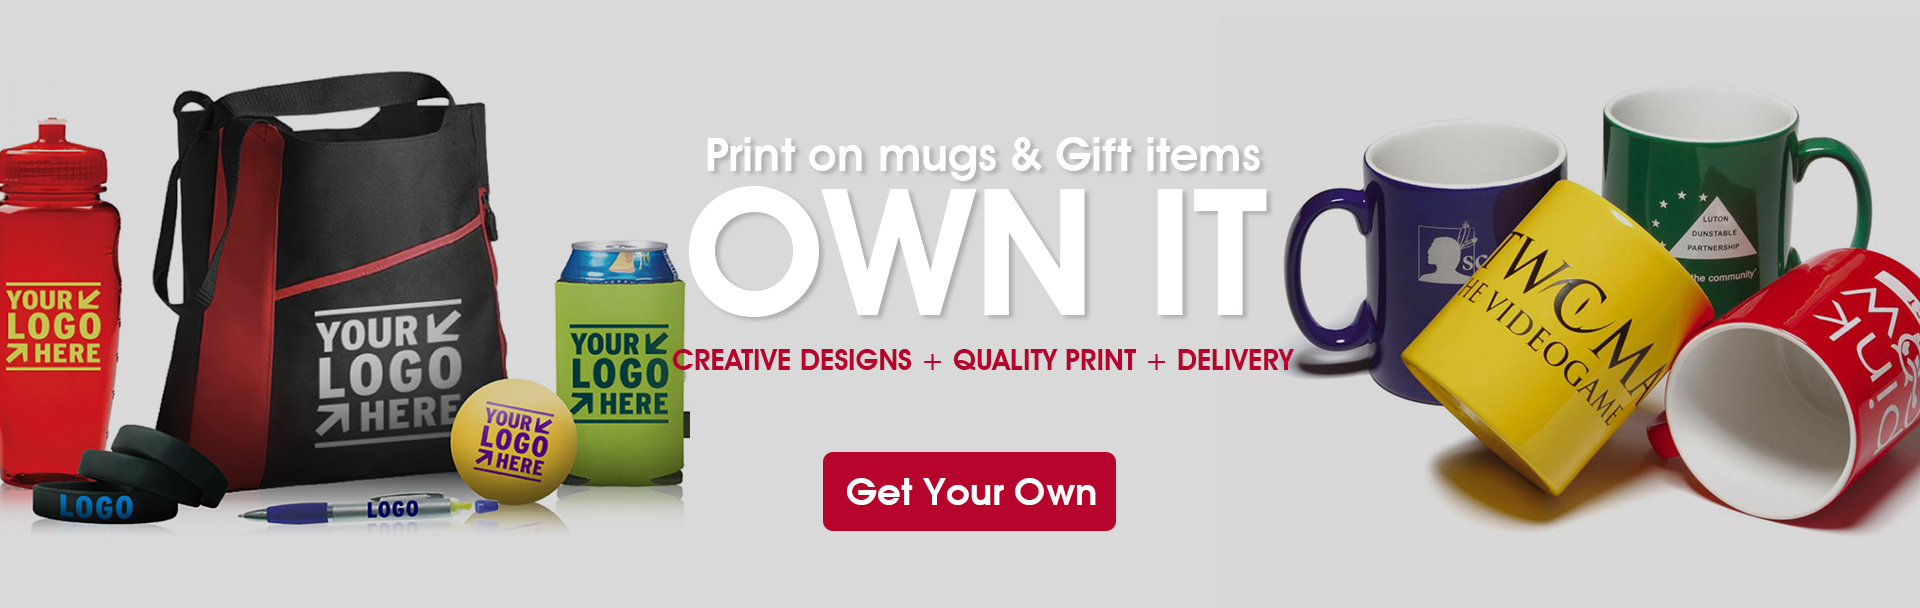 Corporate Gifts Printing in baljit nagar INDIA